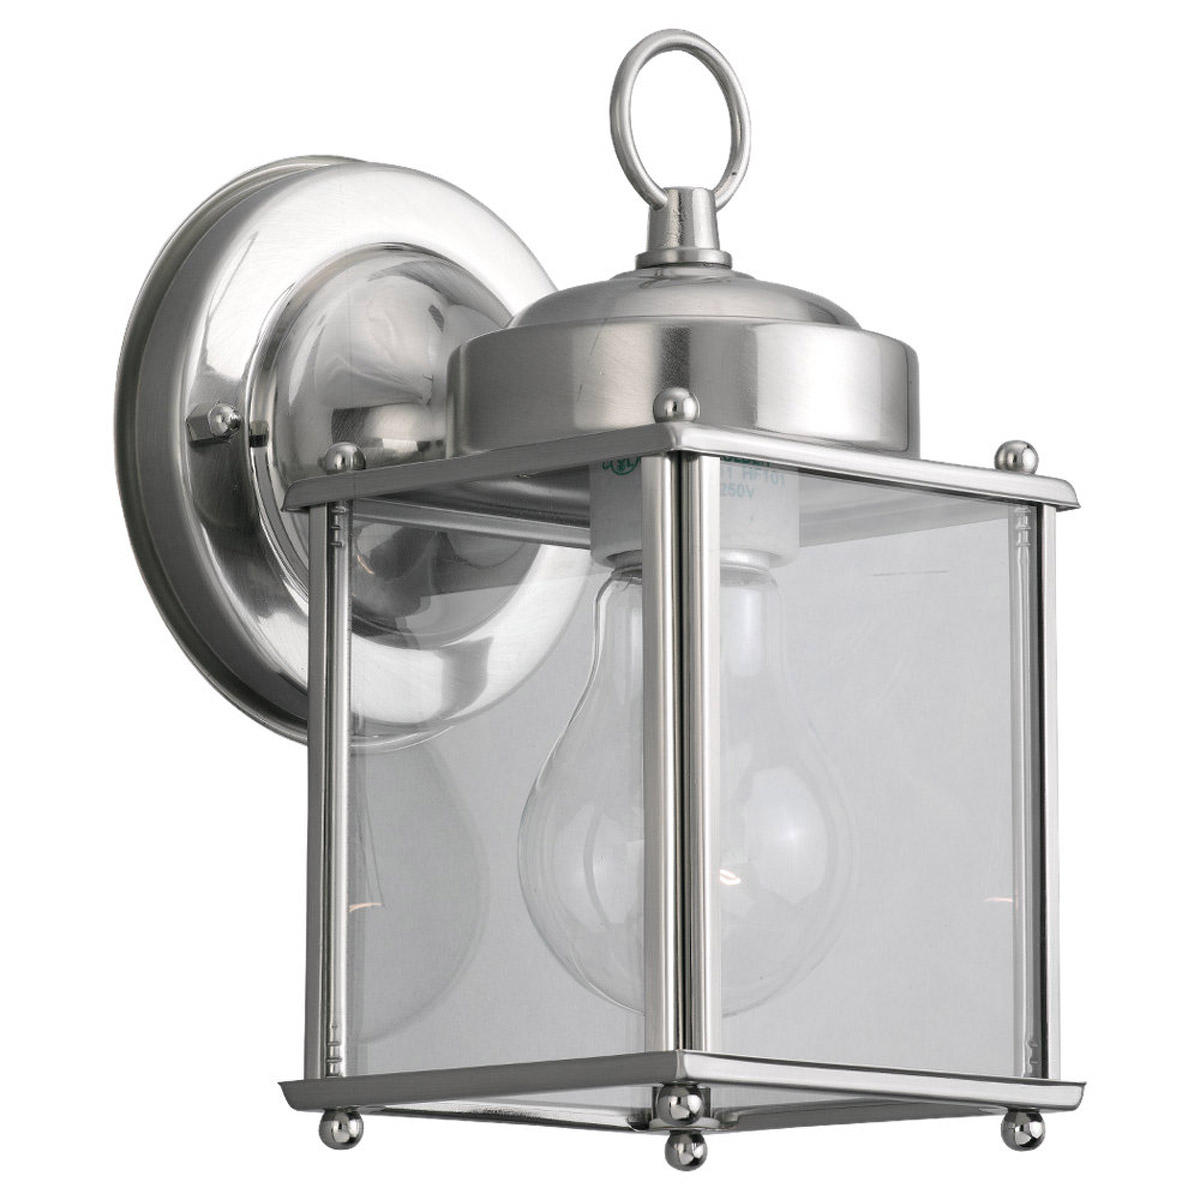 Sea gull 8592 965 new castle 1 light 8 inch antique brushed nickel sea gull 8592 965 new castle 1 light 8 inch antique brushed nickel outdoor wall lantern workwithnaturefo